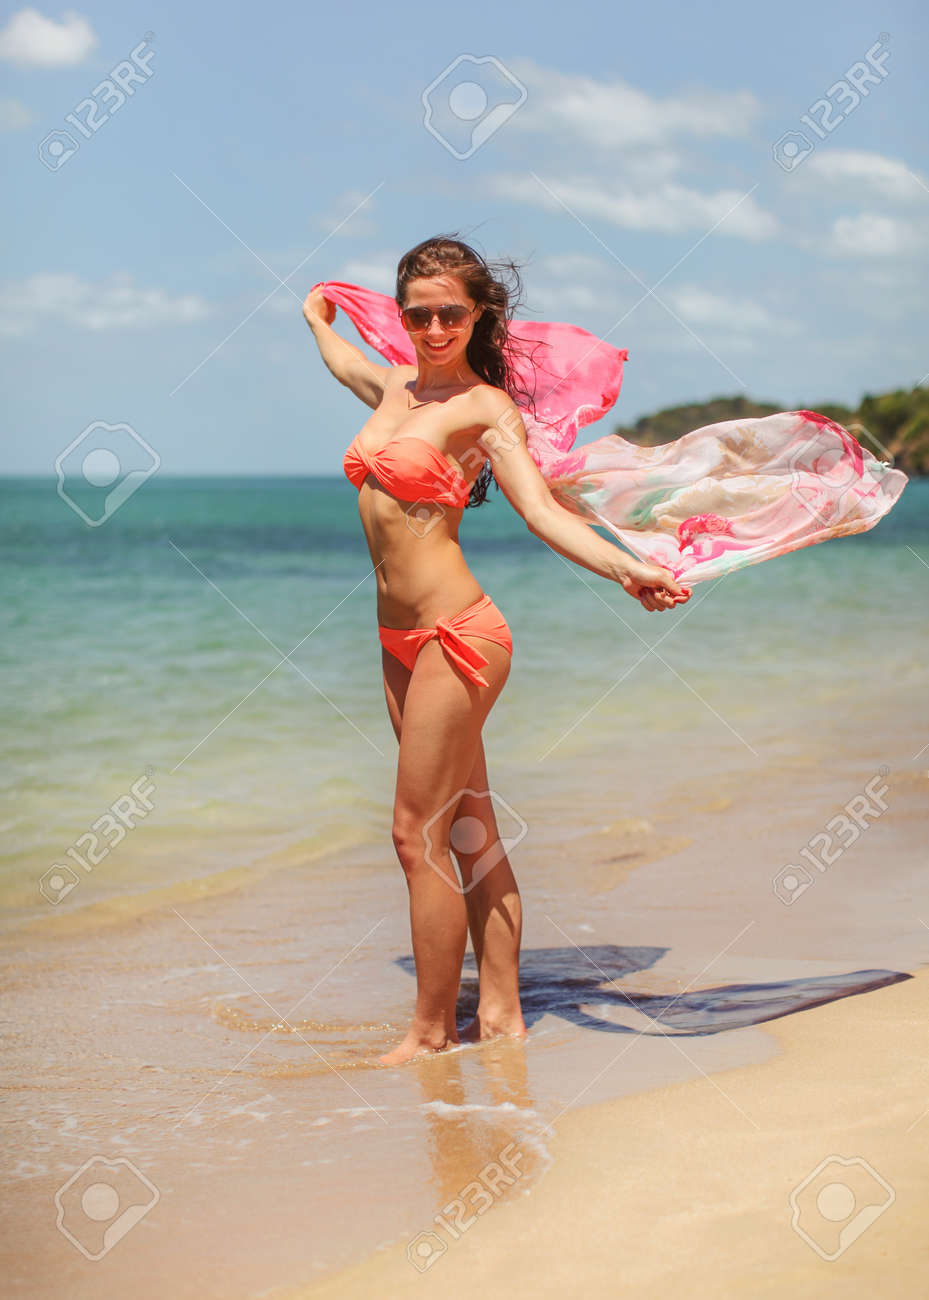 Young woman wearing bikini standing on wet sand at the beach, holding scarf waving in wind. Clear sea and sky background - 168512911